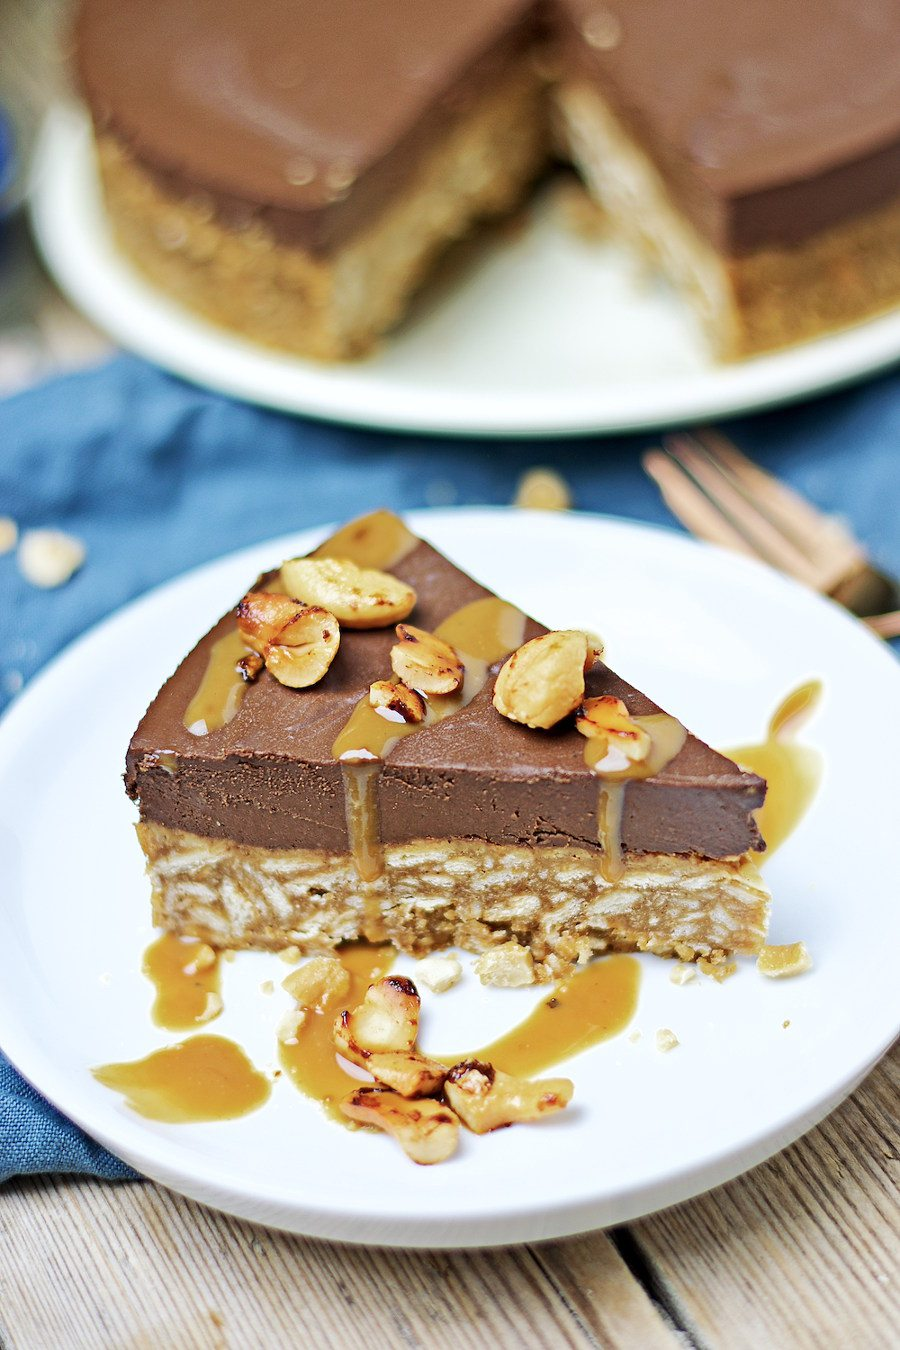 Near view focusing on the roasted cashews and caramel sauce as topping of the Vegan Chocolate Cake